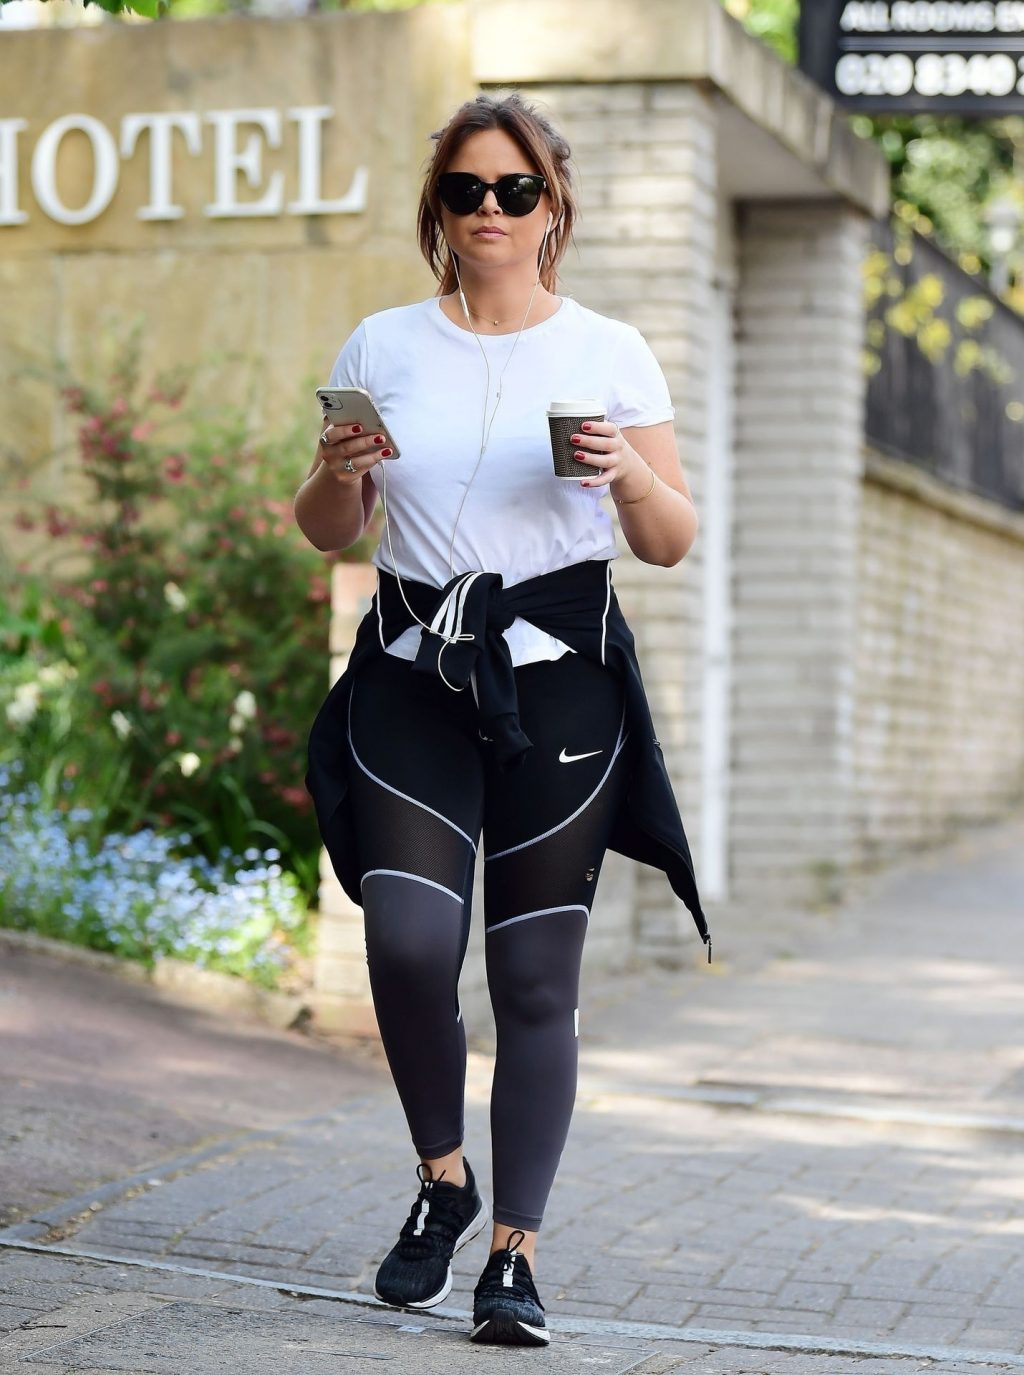 Emily Atack Looks Sporty Out for a Walk (20 Photos)